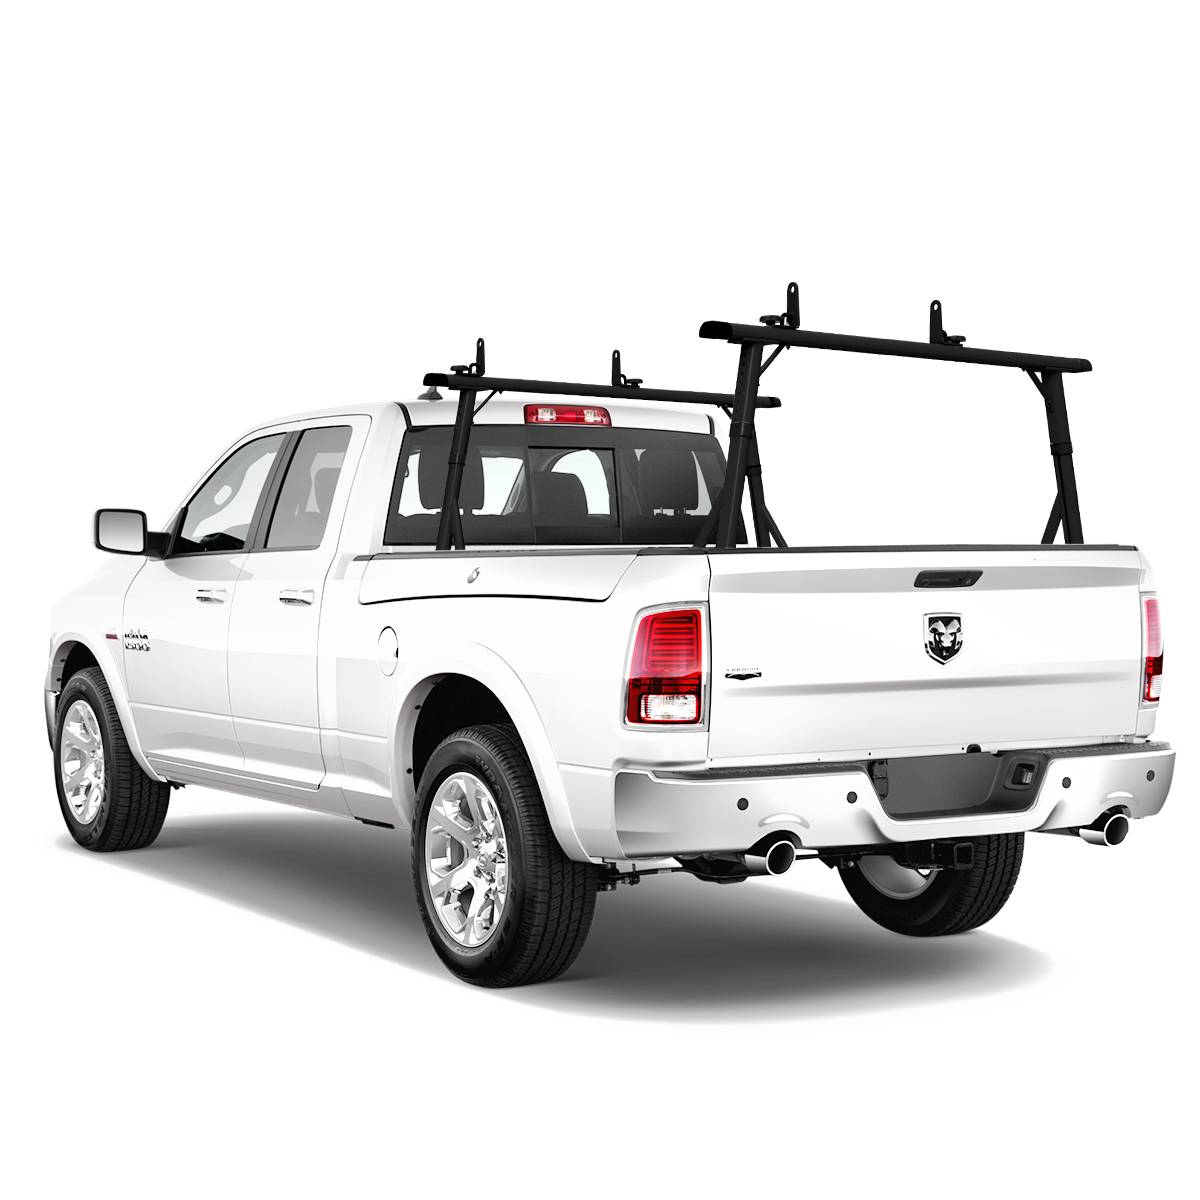 Rambox Ladder Truck Rack for beds with Rambox